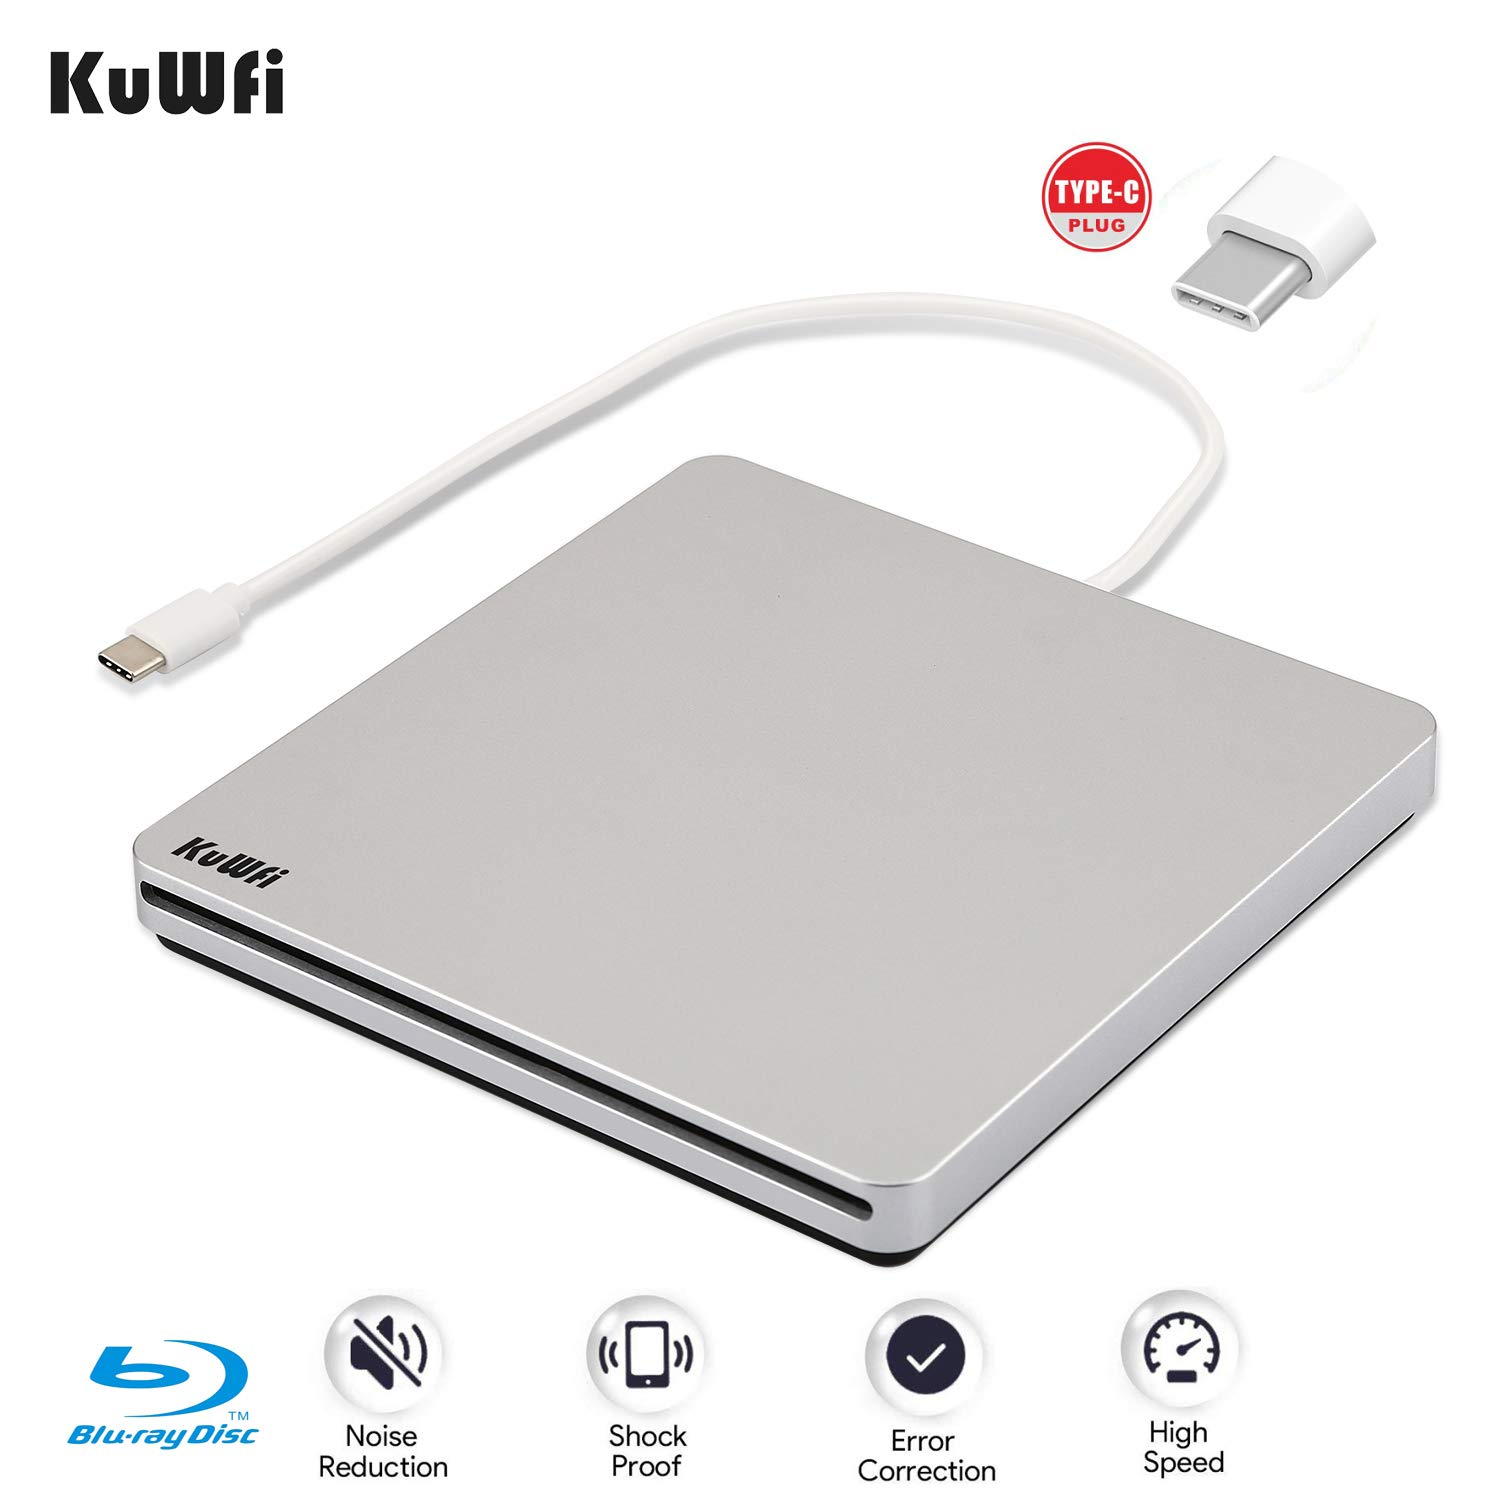 KuWFi External Blu Ray Drive USB Type-C DVD/CD Burner External DVD/CD +/-RW Burner Optical Drive Support 3D for Apple MAC PC Laptop Notebook